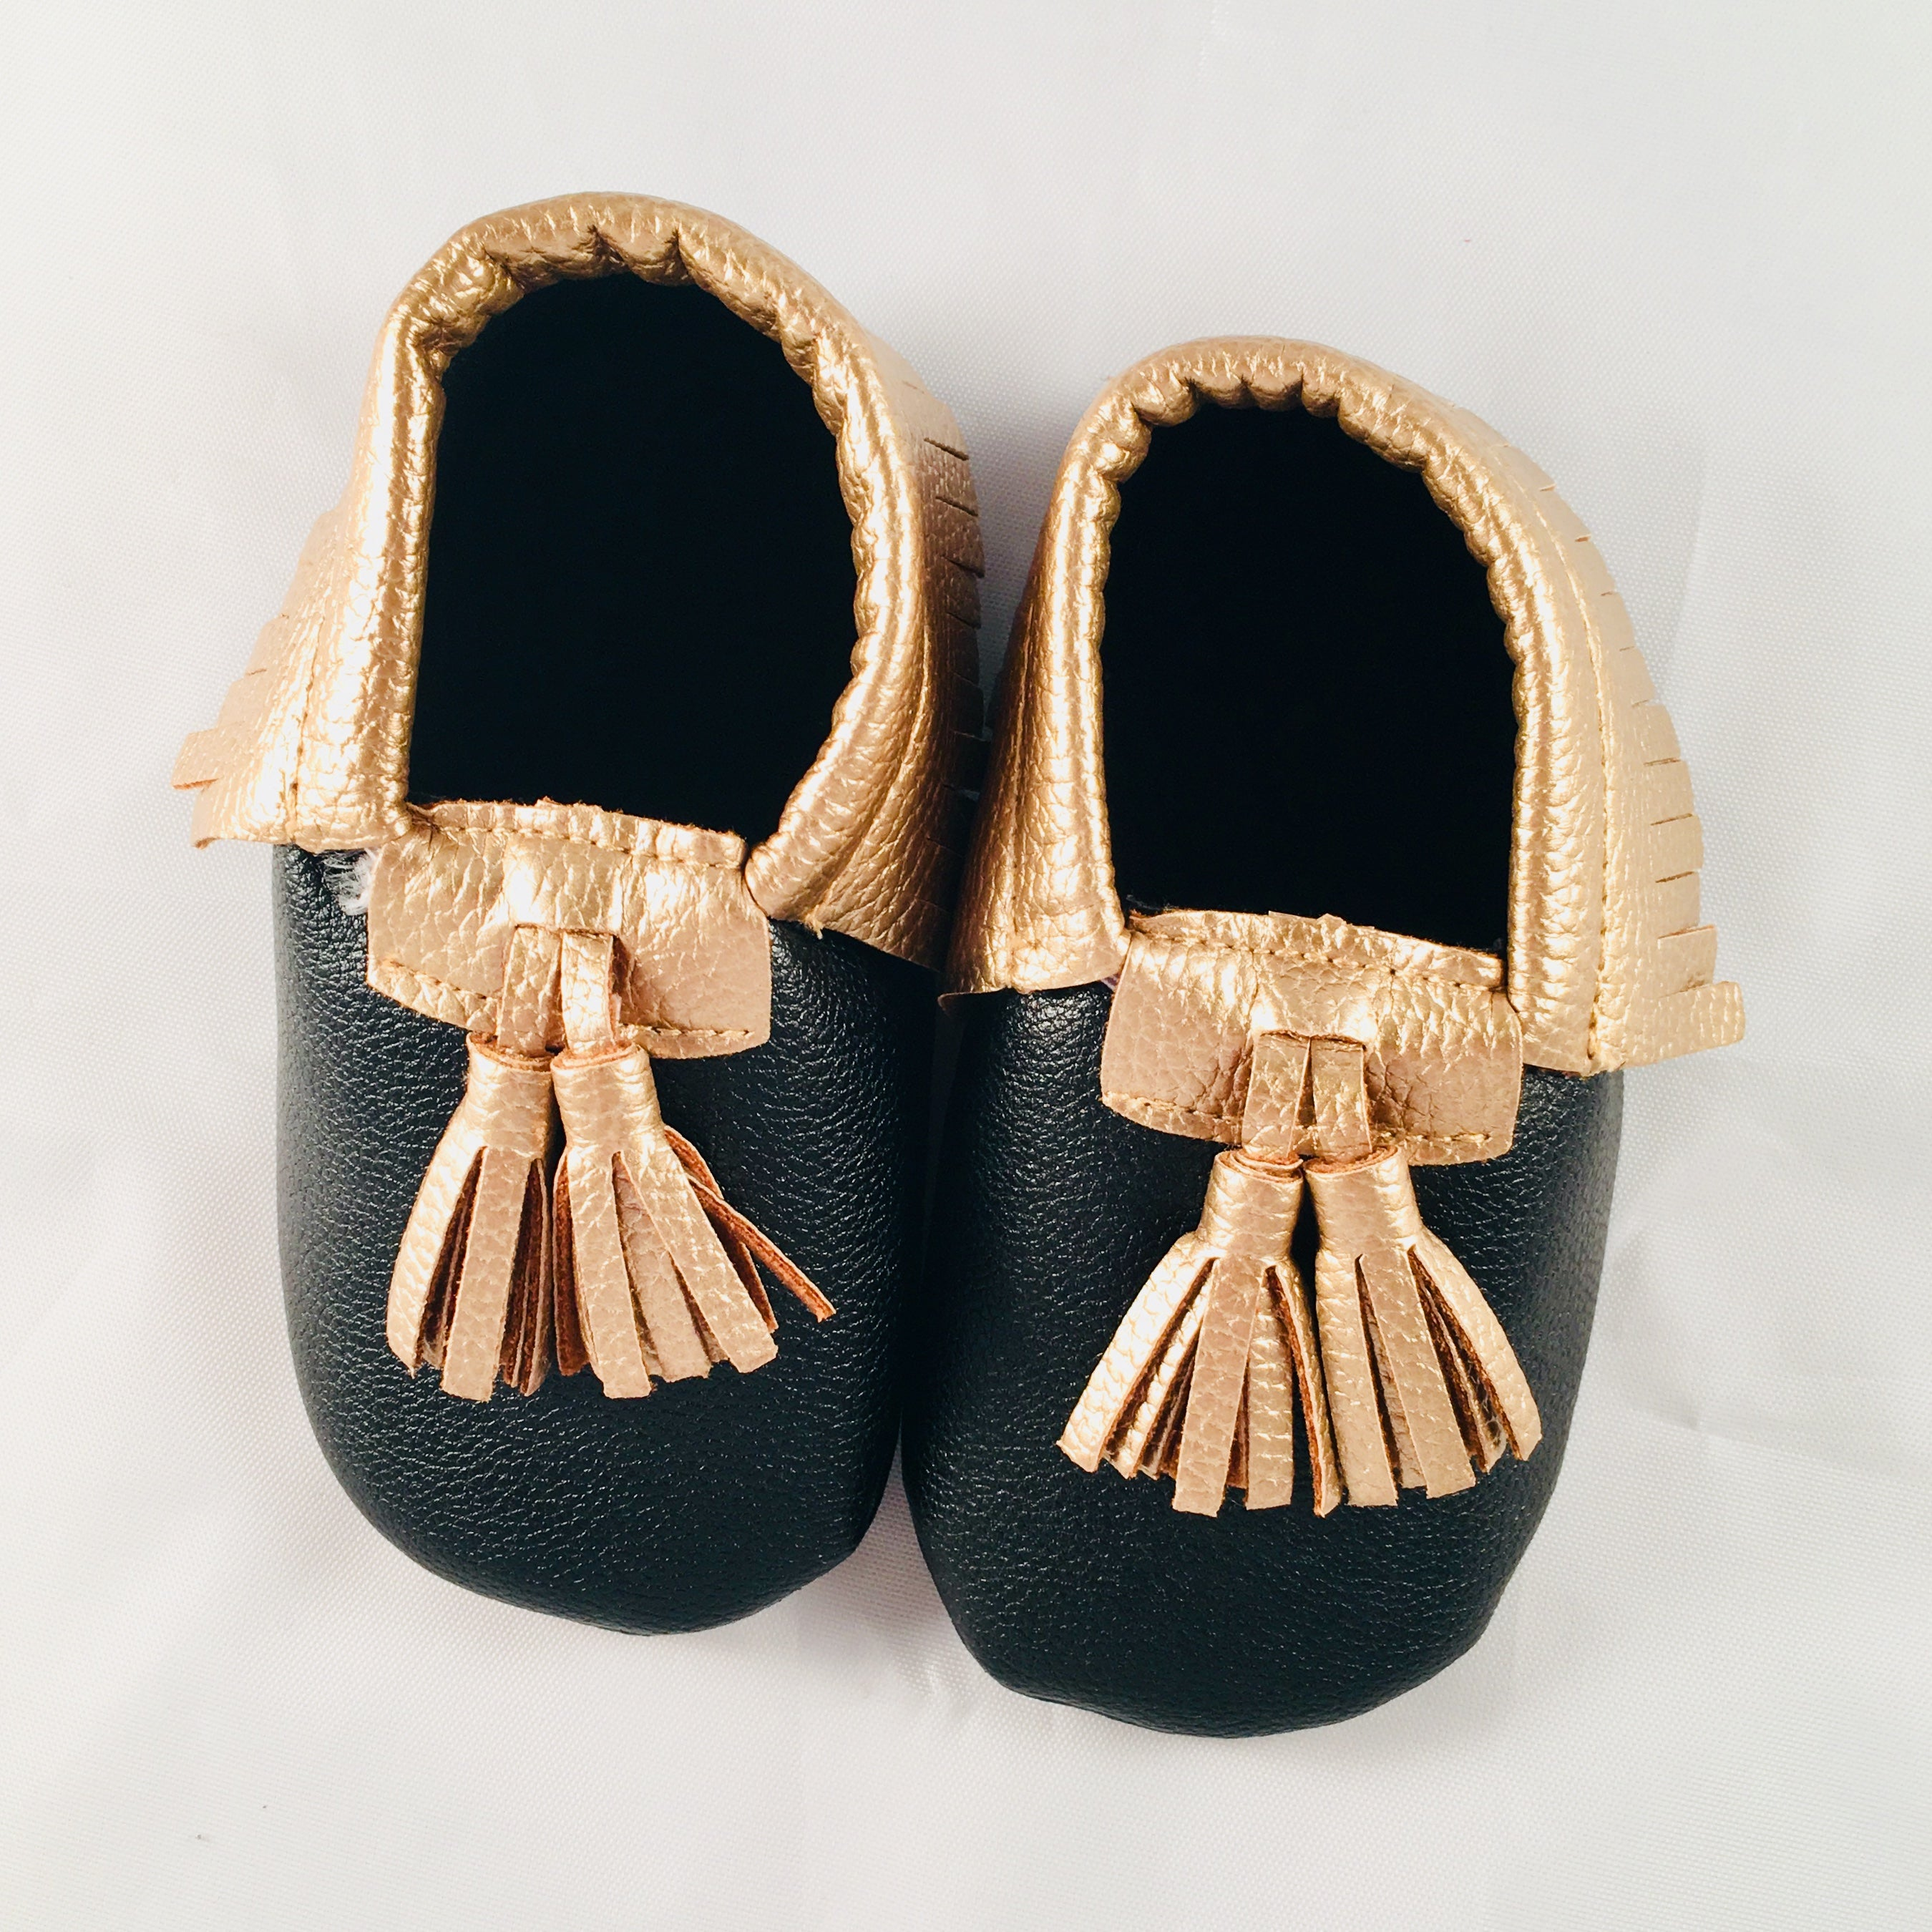 Nee & Co Moccasins - BumbleBox